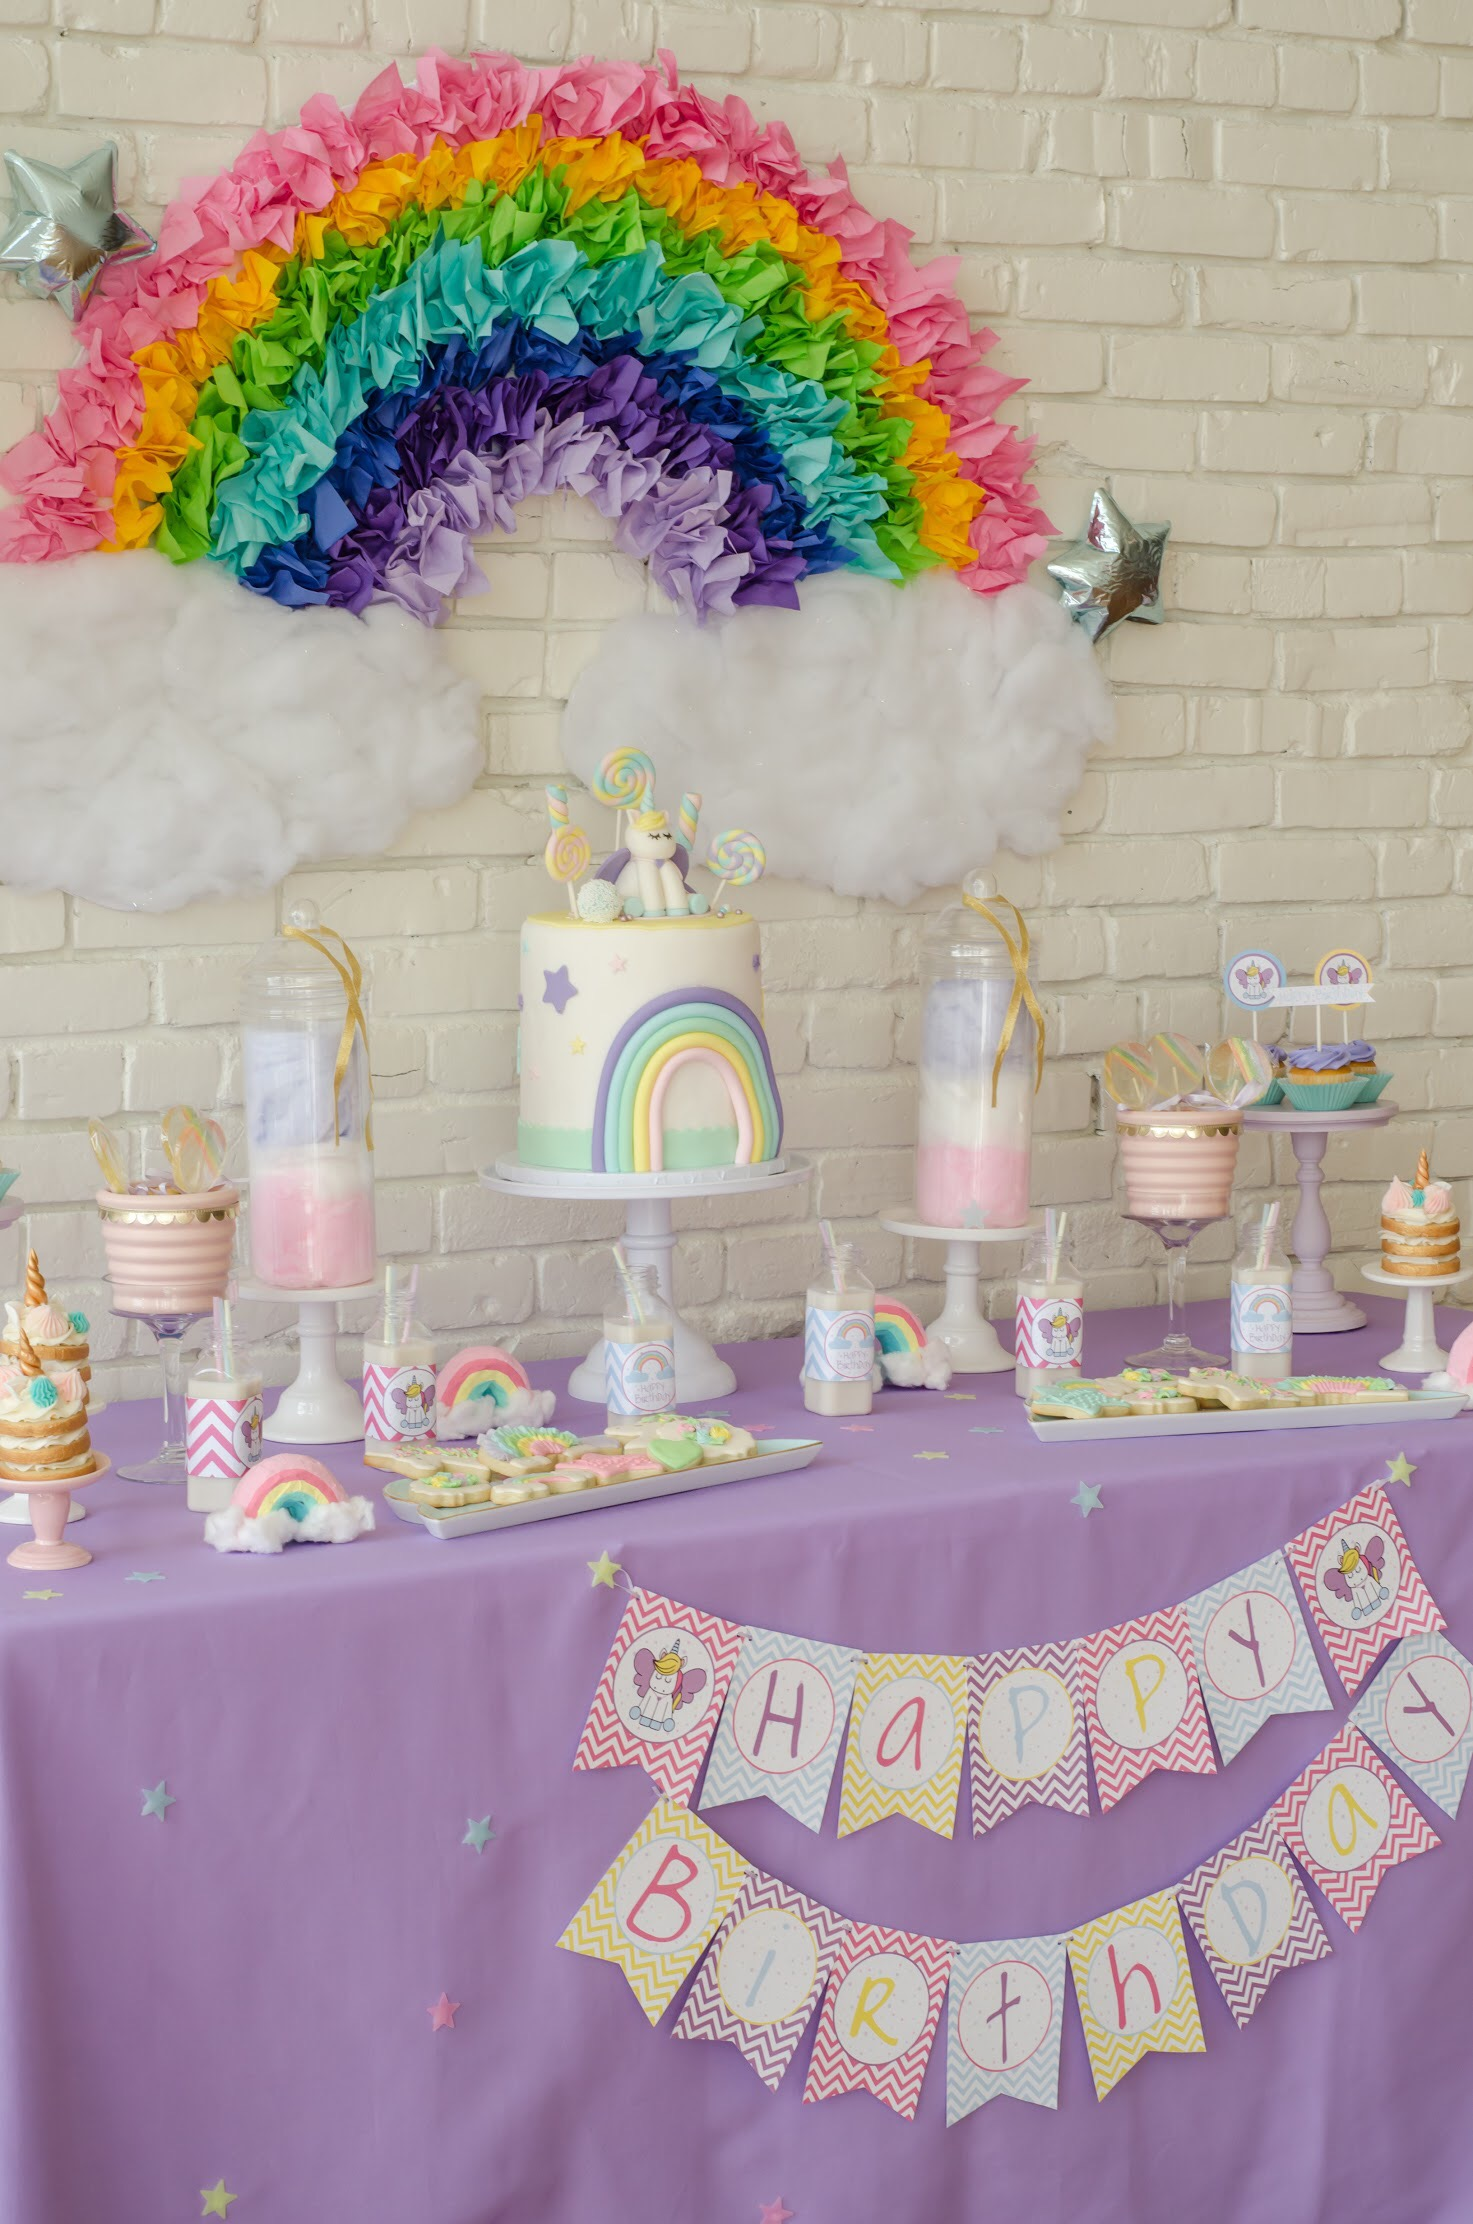 Love this rainbow colored unicorn party from Mint Event Design, perfect first birthday theme. Come see all the Unicorn Birthday Party Ideas at Mint Event Design www.minteventdesign.com #unicornparty #birthdayparty #birthdaypartyideas #pastelrainbow #desserttable